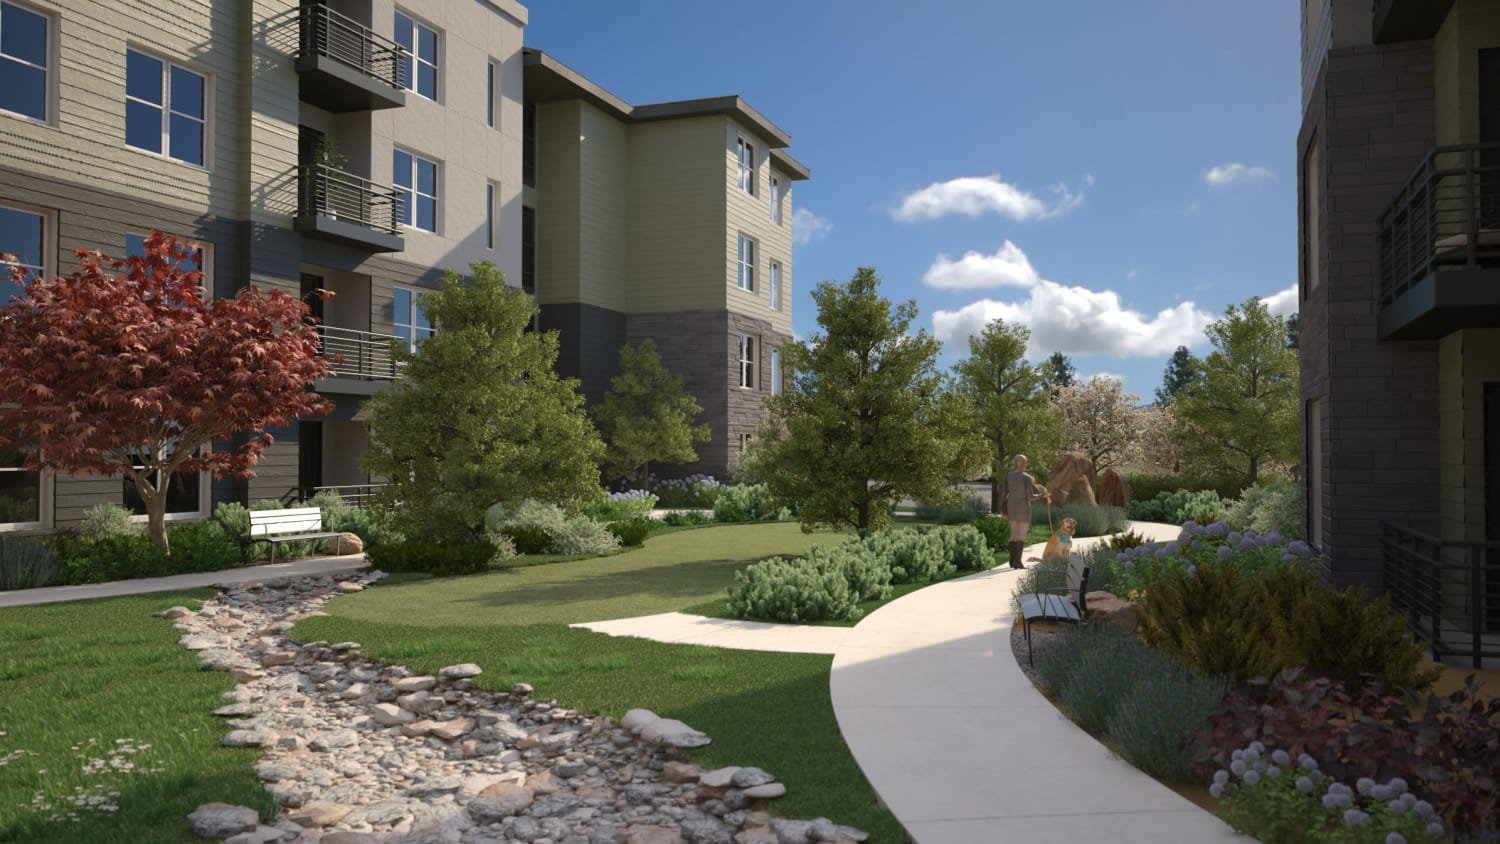 Spacious outdoor areas at Avenida Lakewood senior living apartments in Lakewood, Colorado